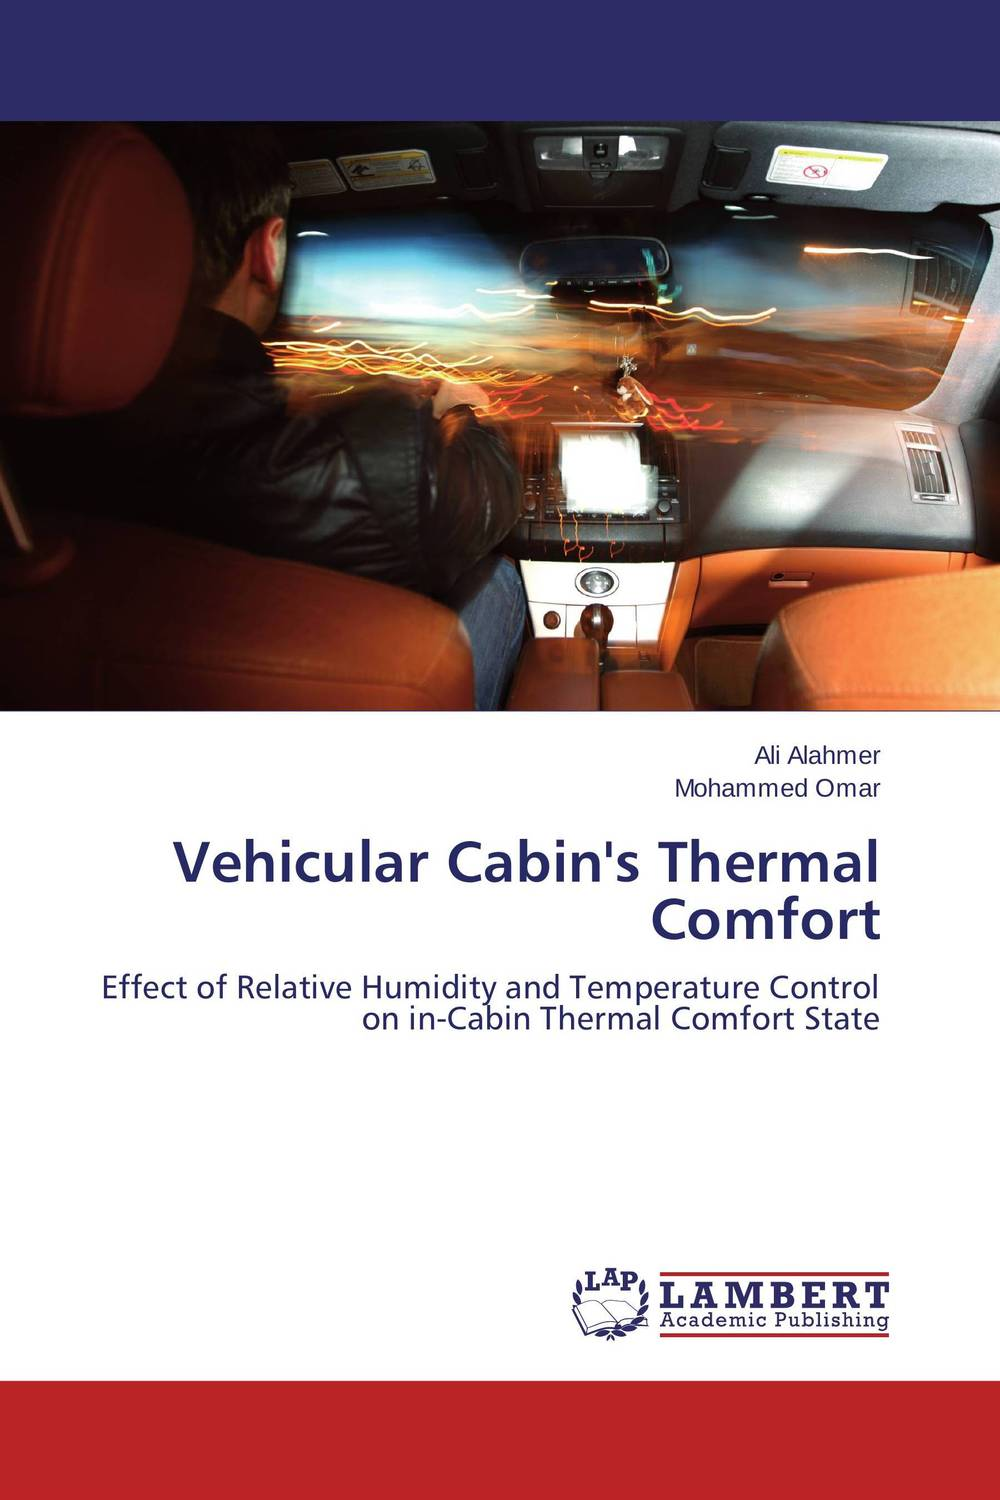 aqualung dry comfort Vehicular Cabin's Thermal Comfort